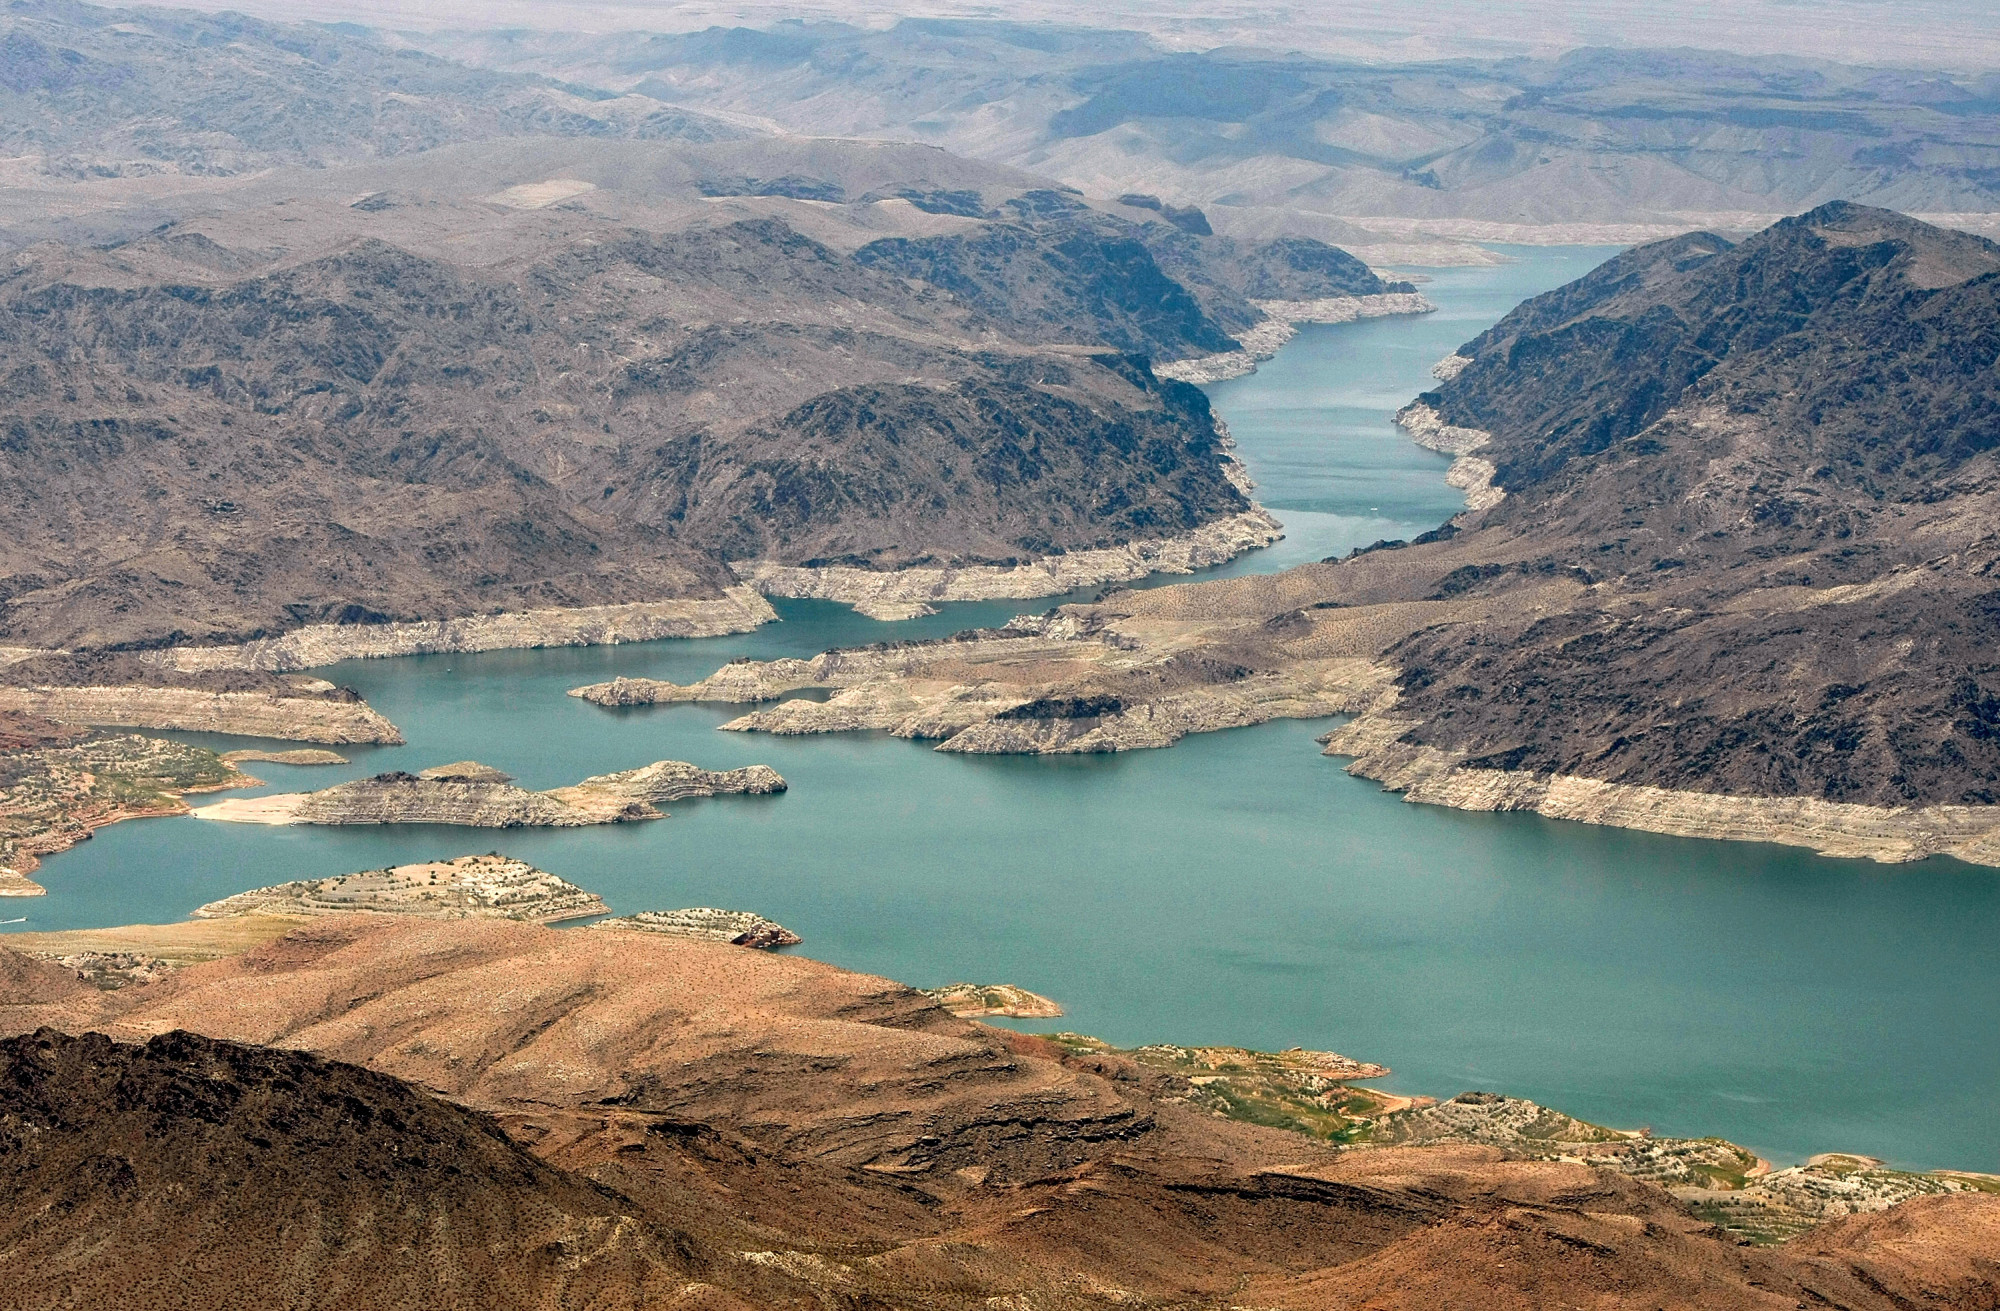 Lake Mead Water Levels Down 30 Feet Since February - Lake ...